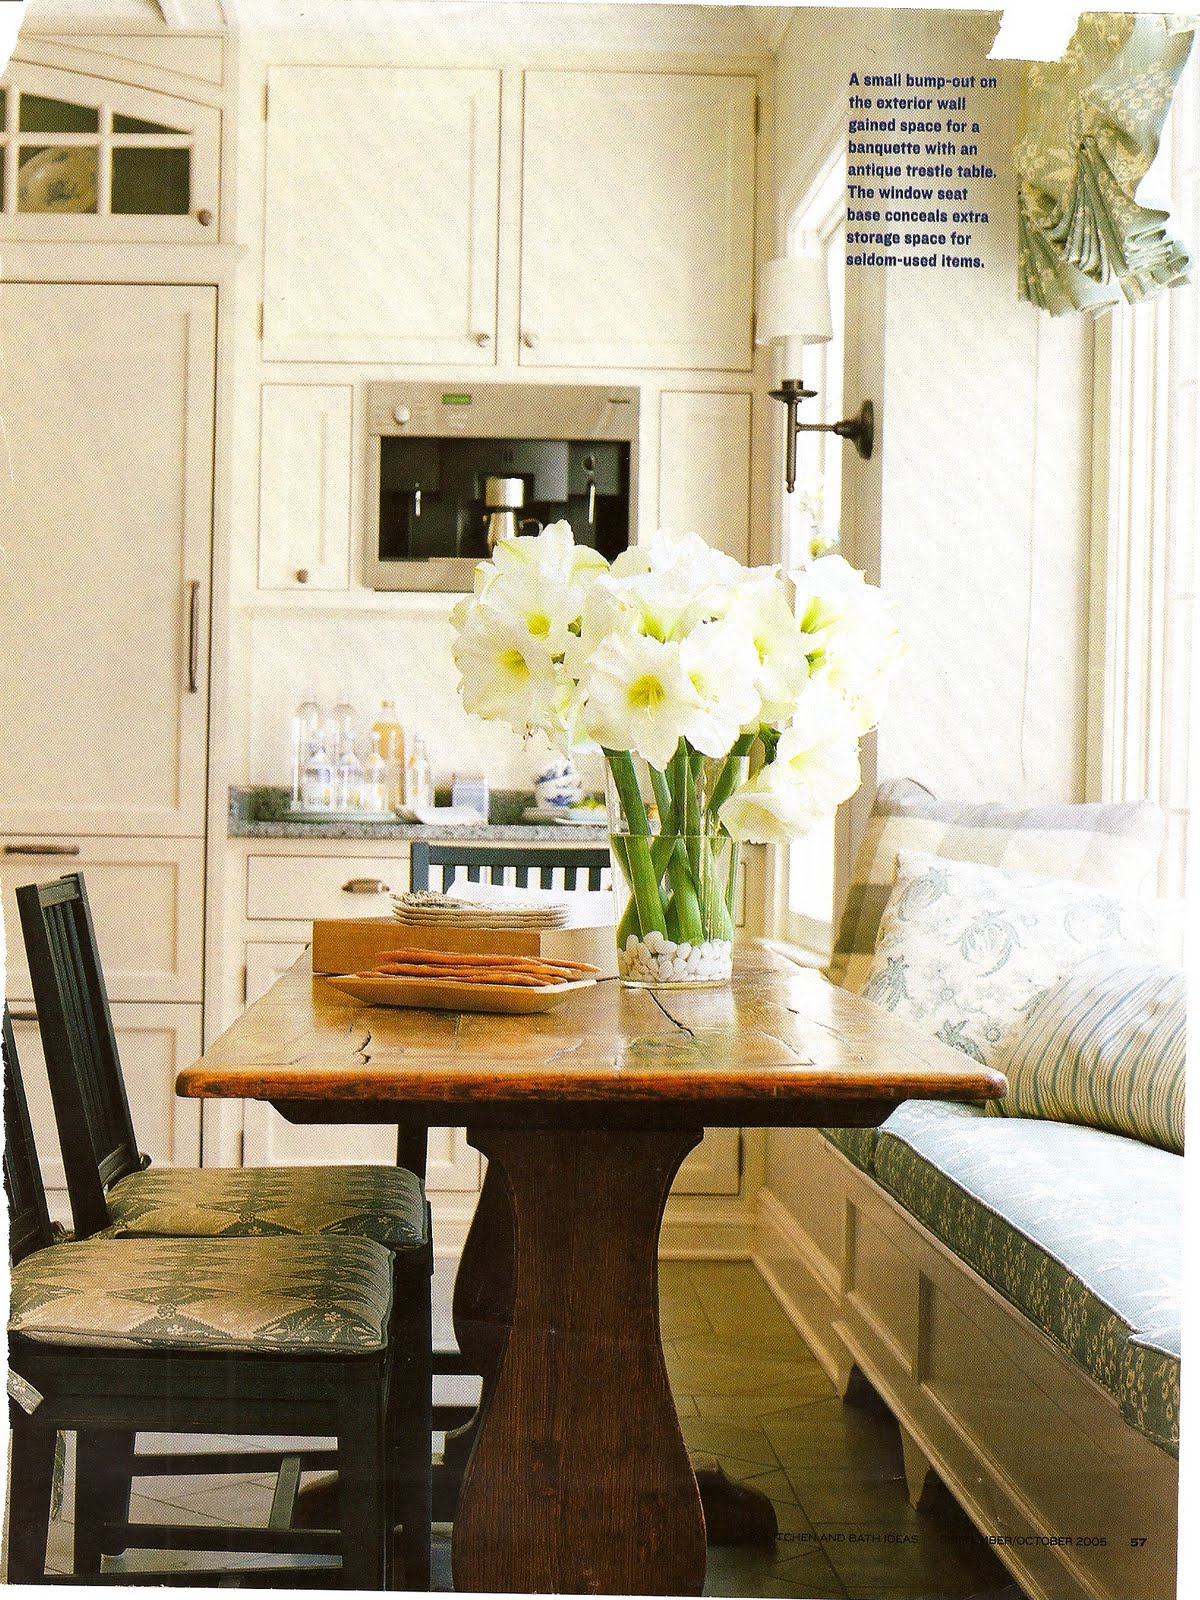 Suzeday tuesday kitchens belclaire house for Small eating table